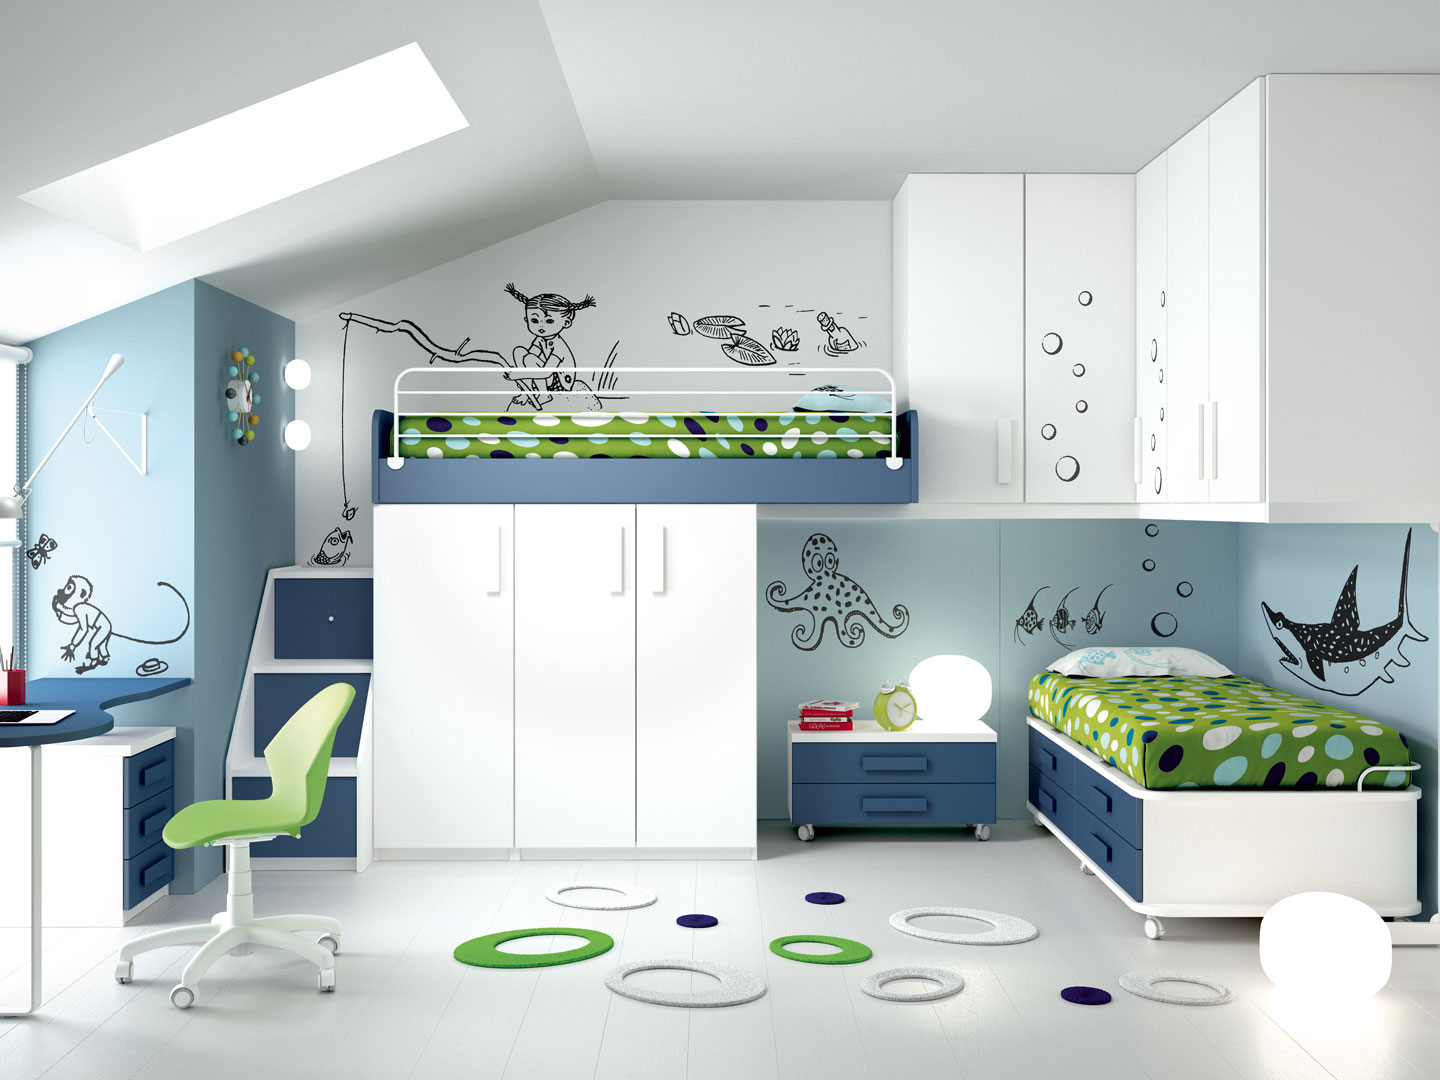 Camerette made in italy ima mobili composizione 7 newformsdesign camerette newformsdesign - Mobili made in italy ...